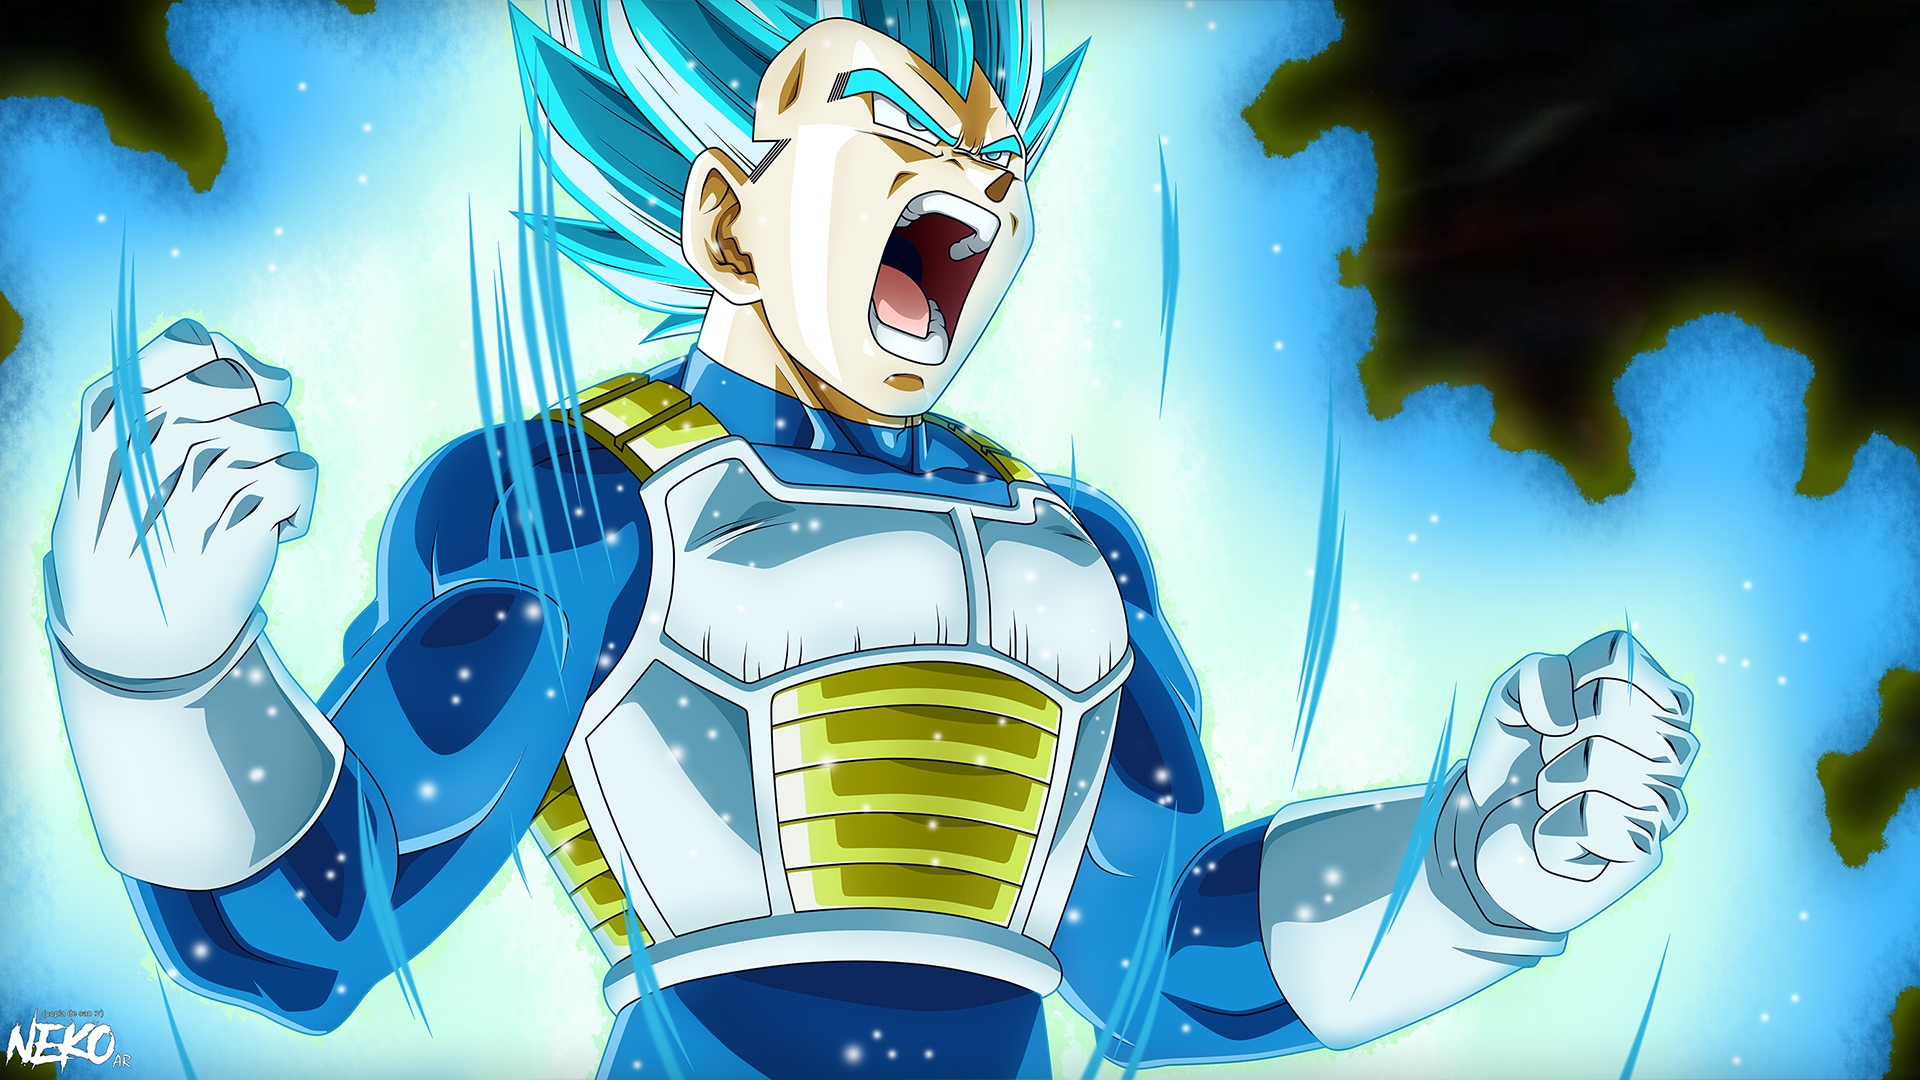 Vegeta Blueee Full HD Wallpaper And Background Image